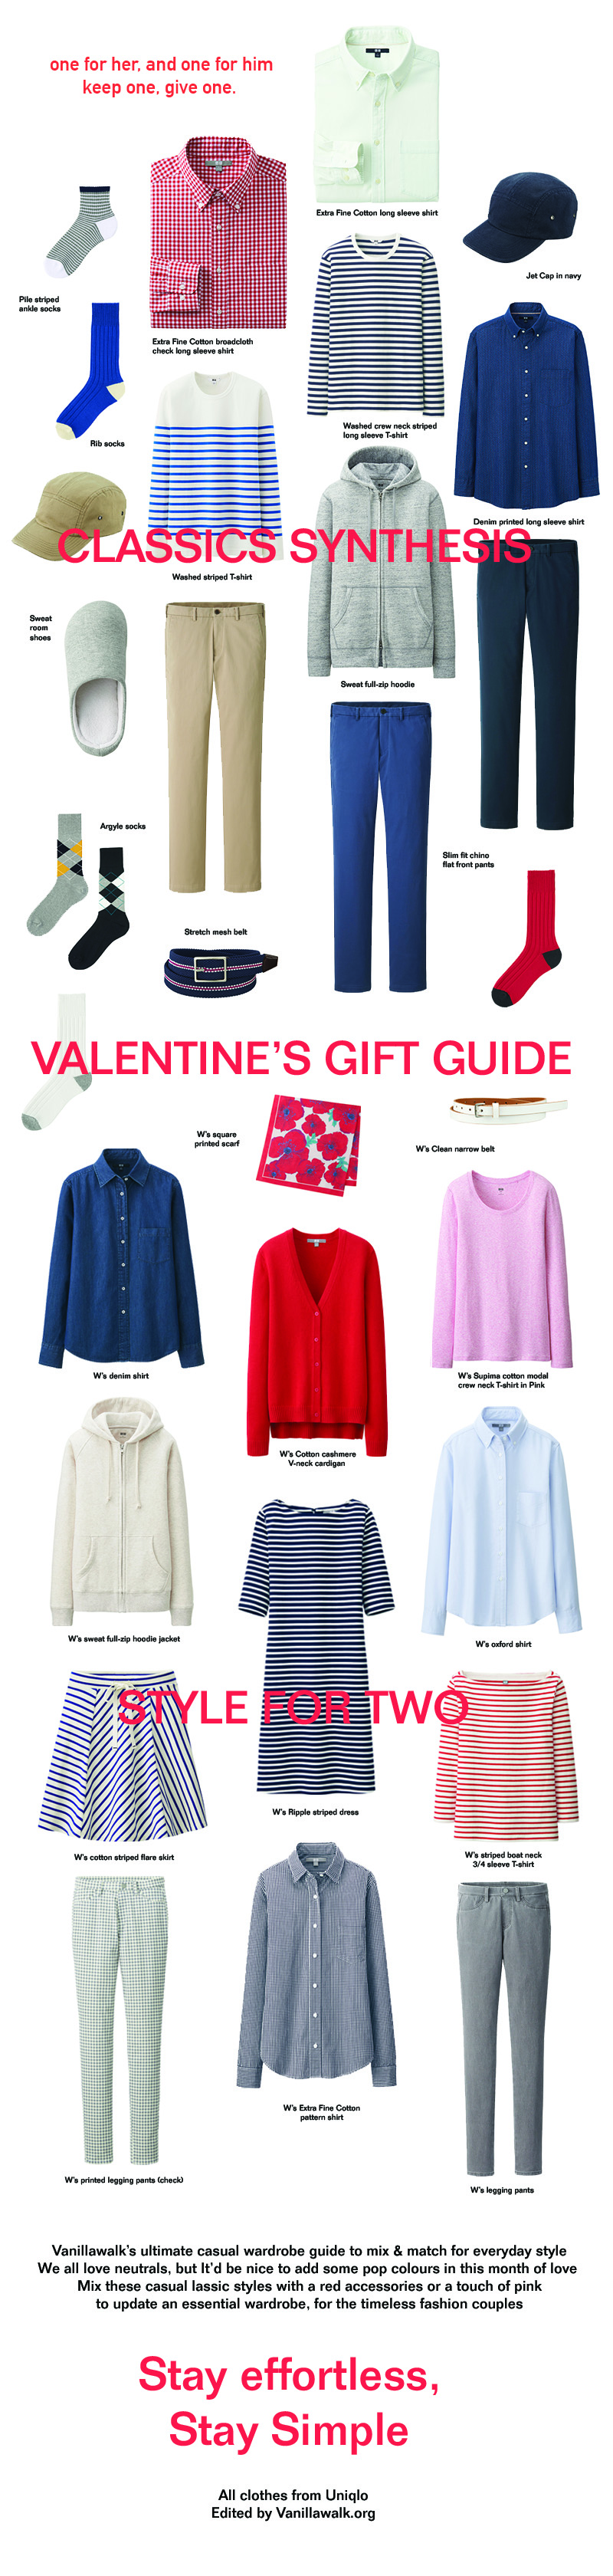 uniqlo_valentines_update copy